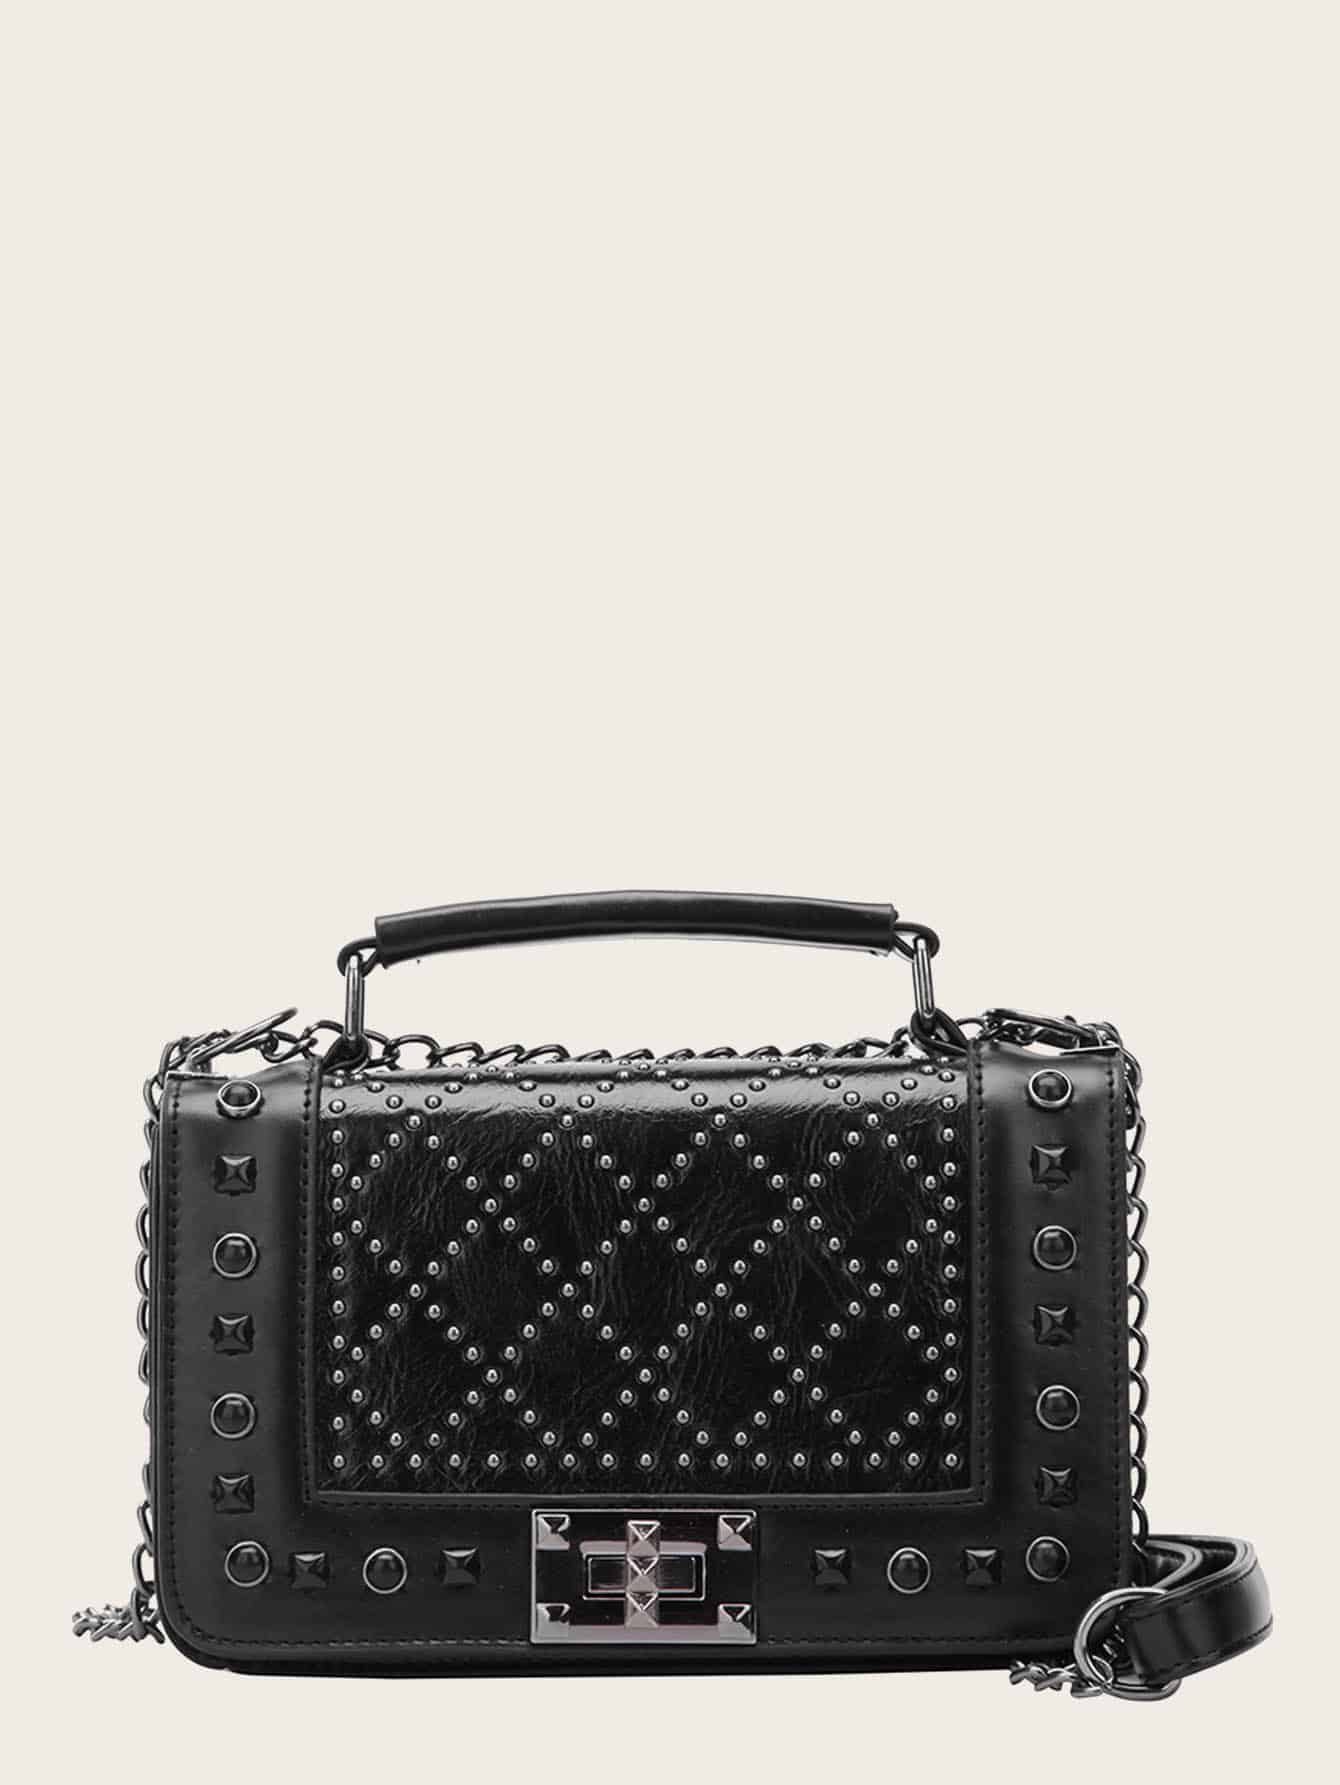 Studded Decor Satchel Chain Bag null